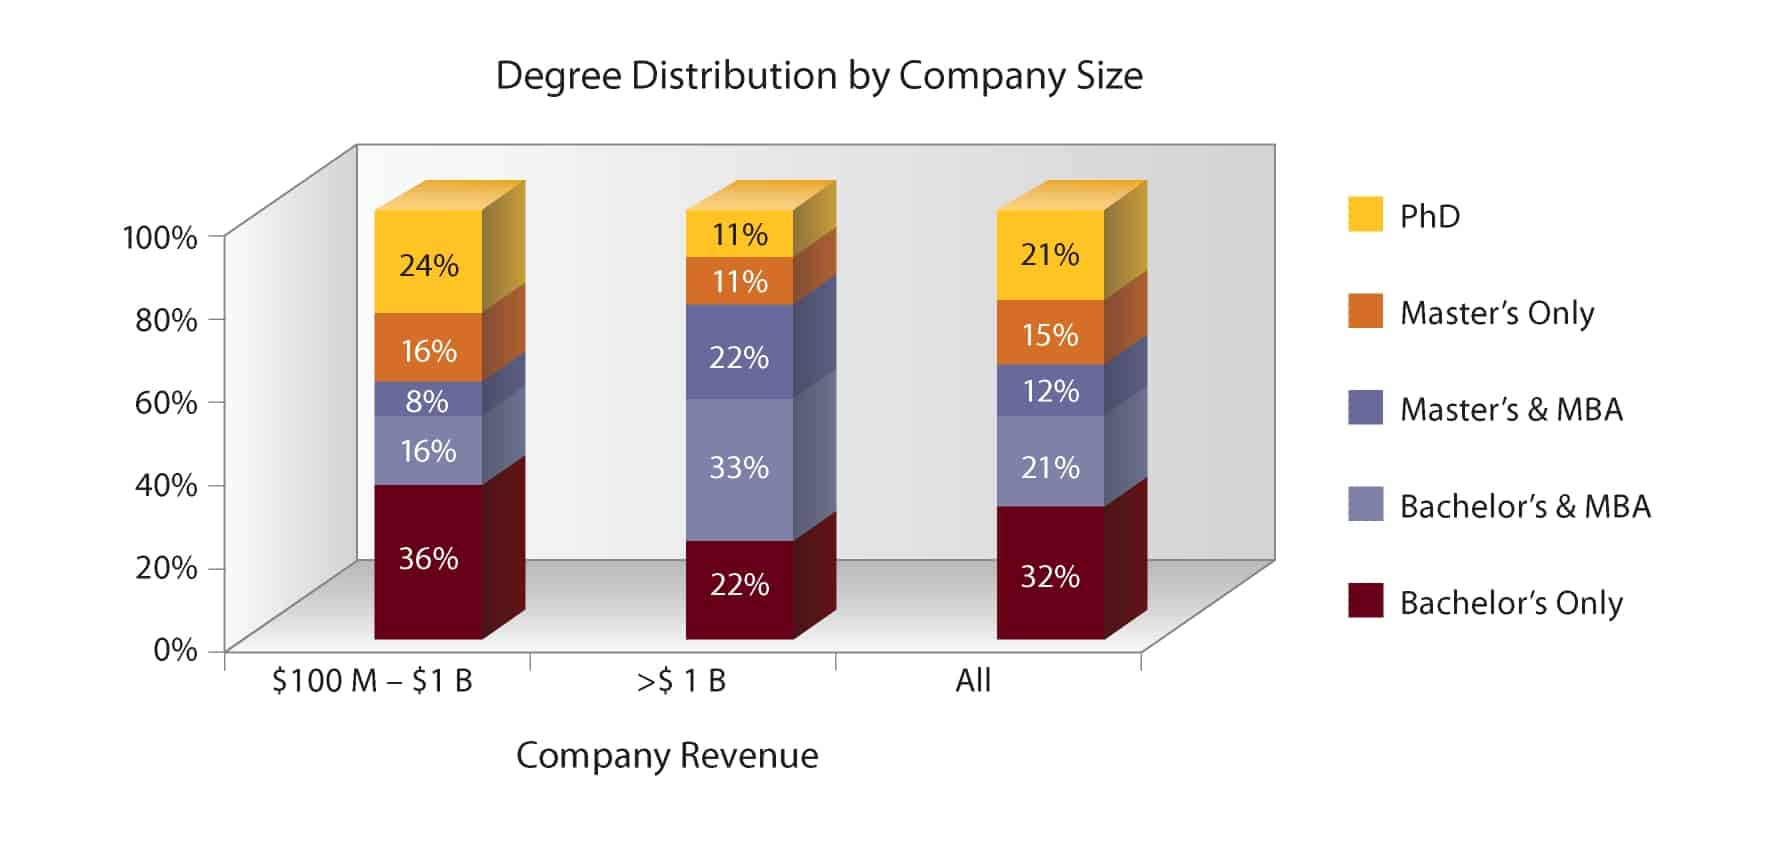 Degree distribution by company size